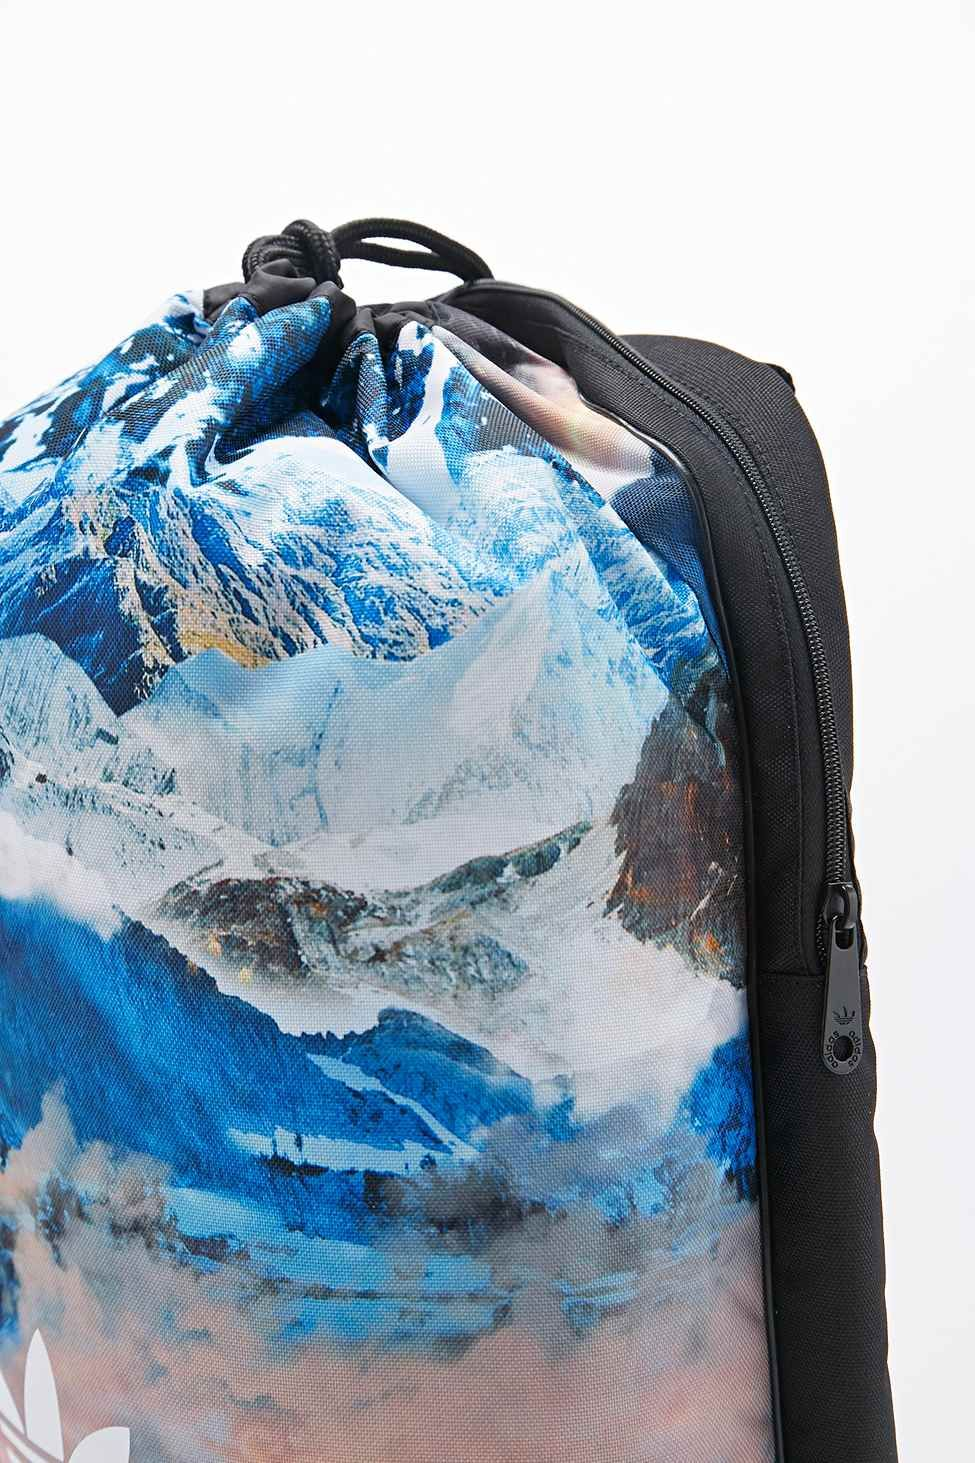 Adidas Originals Mountain Clash Backpack in Black  f9eed2a5f7983